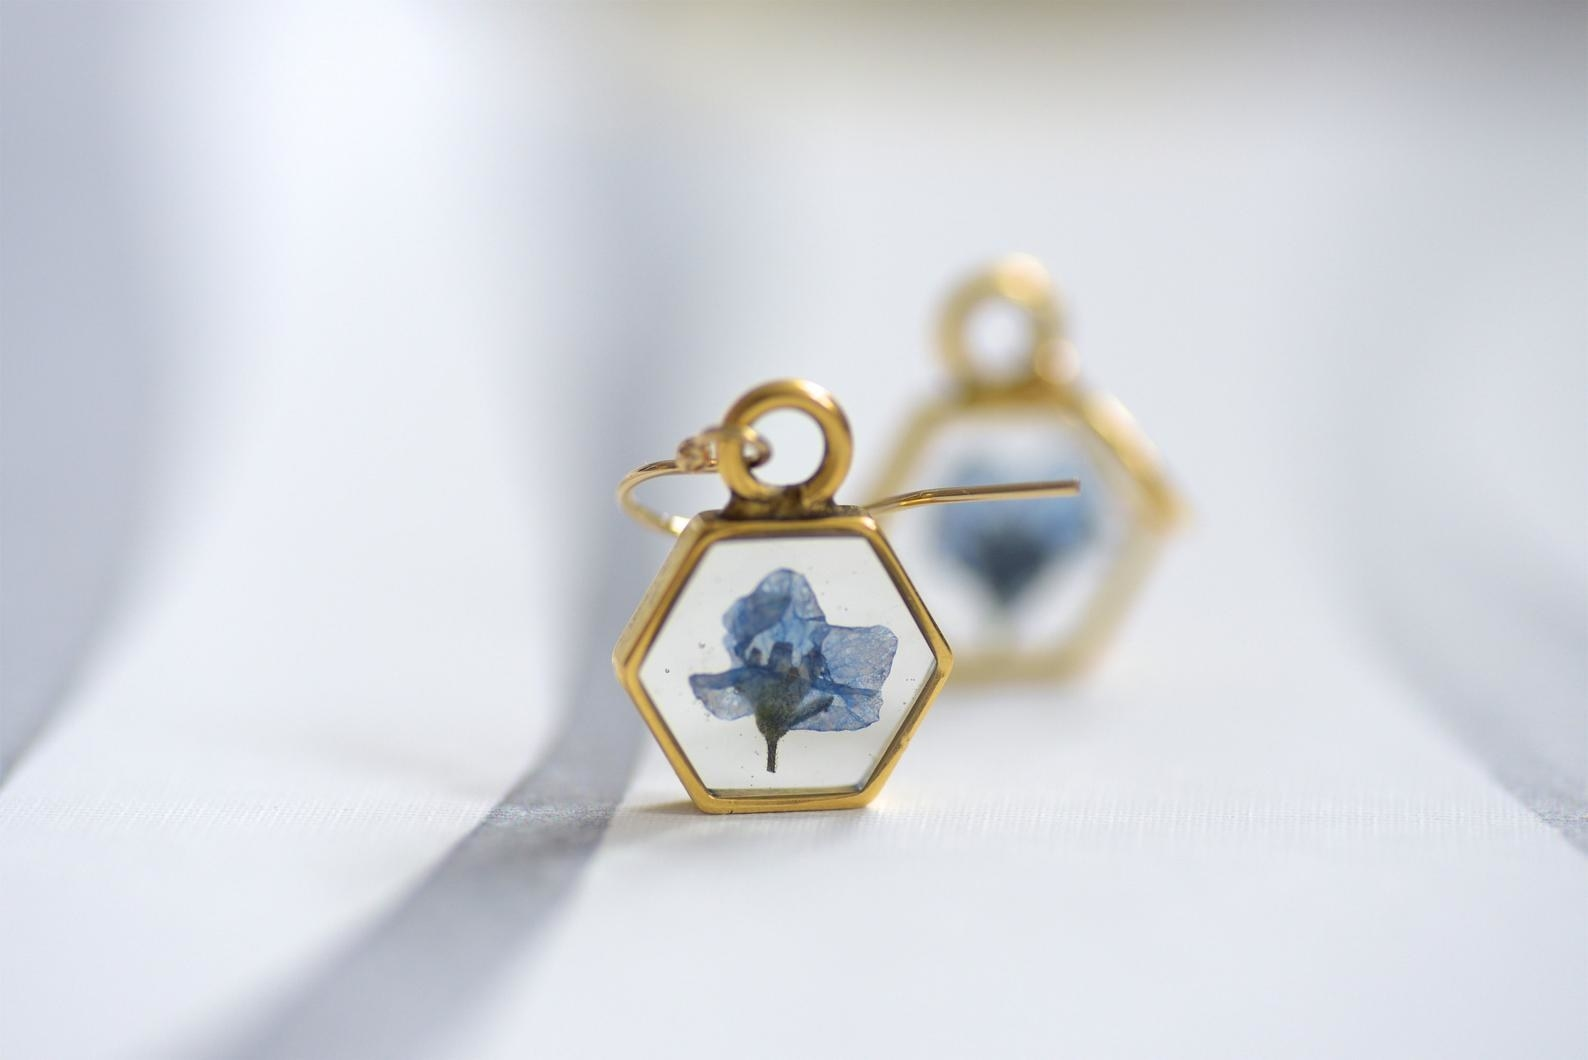 the hexagon earrings, which have a small pressed blue flower in the center